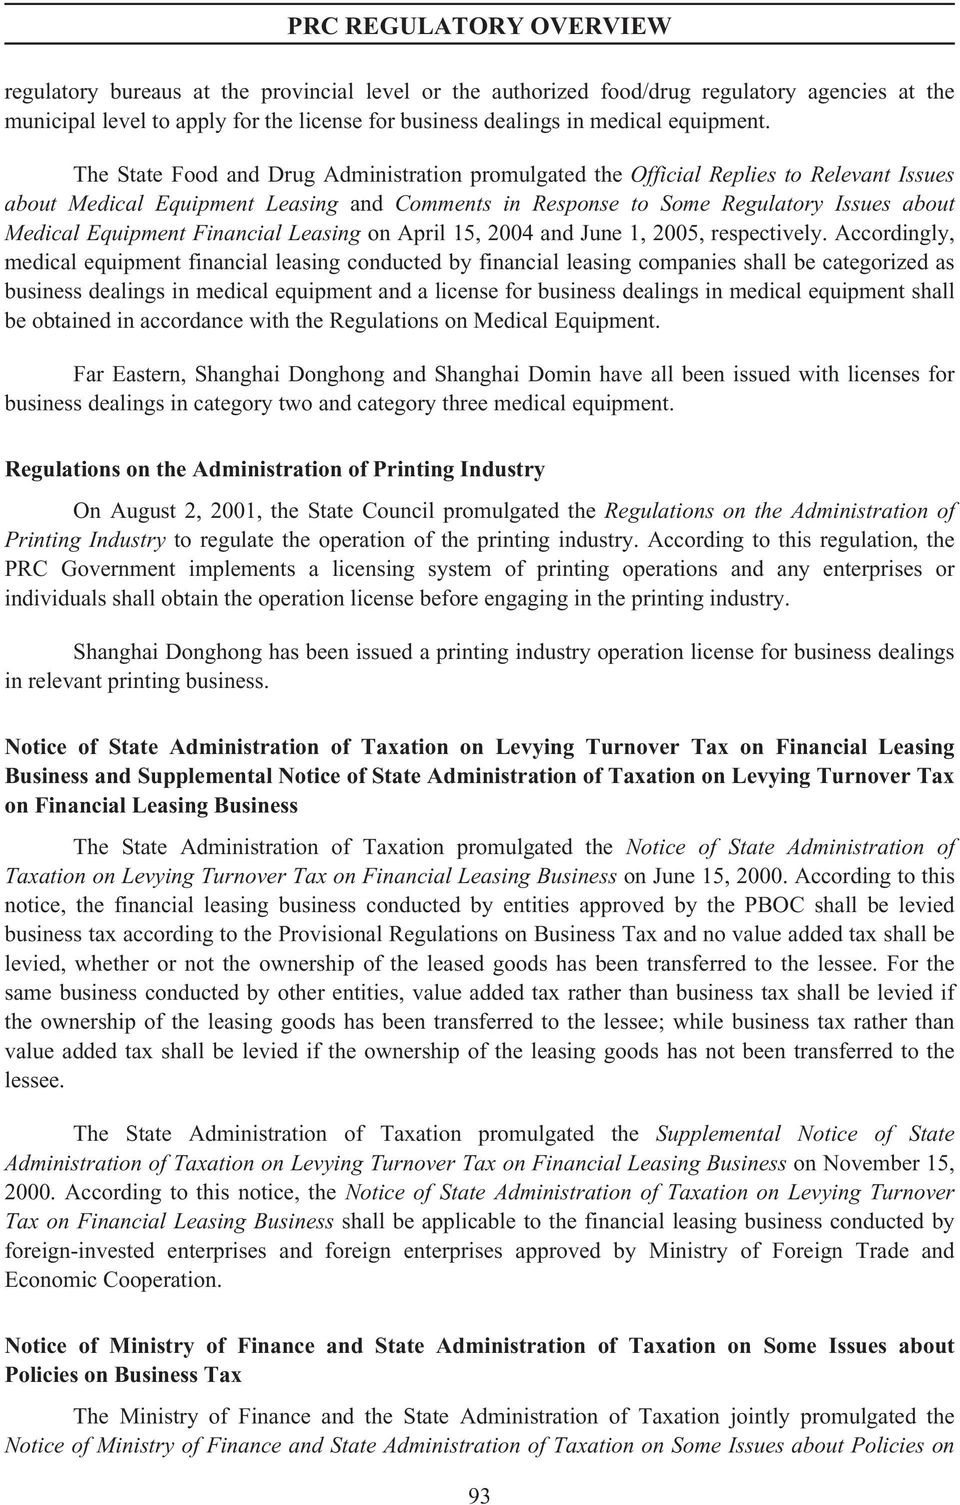 Financial Leasing on April 15, 2004 and June 1, 2005, respectively.